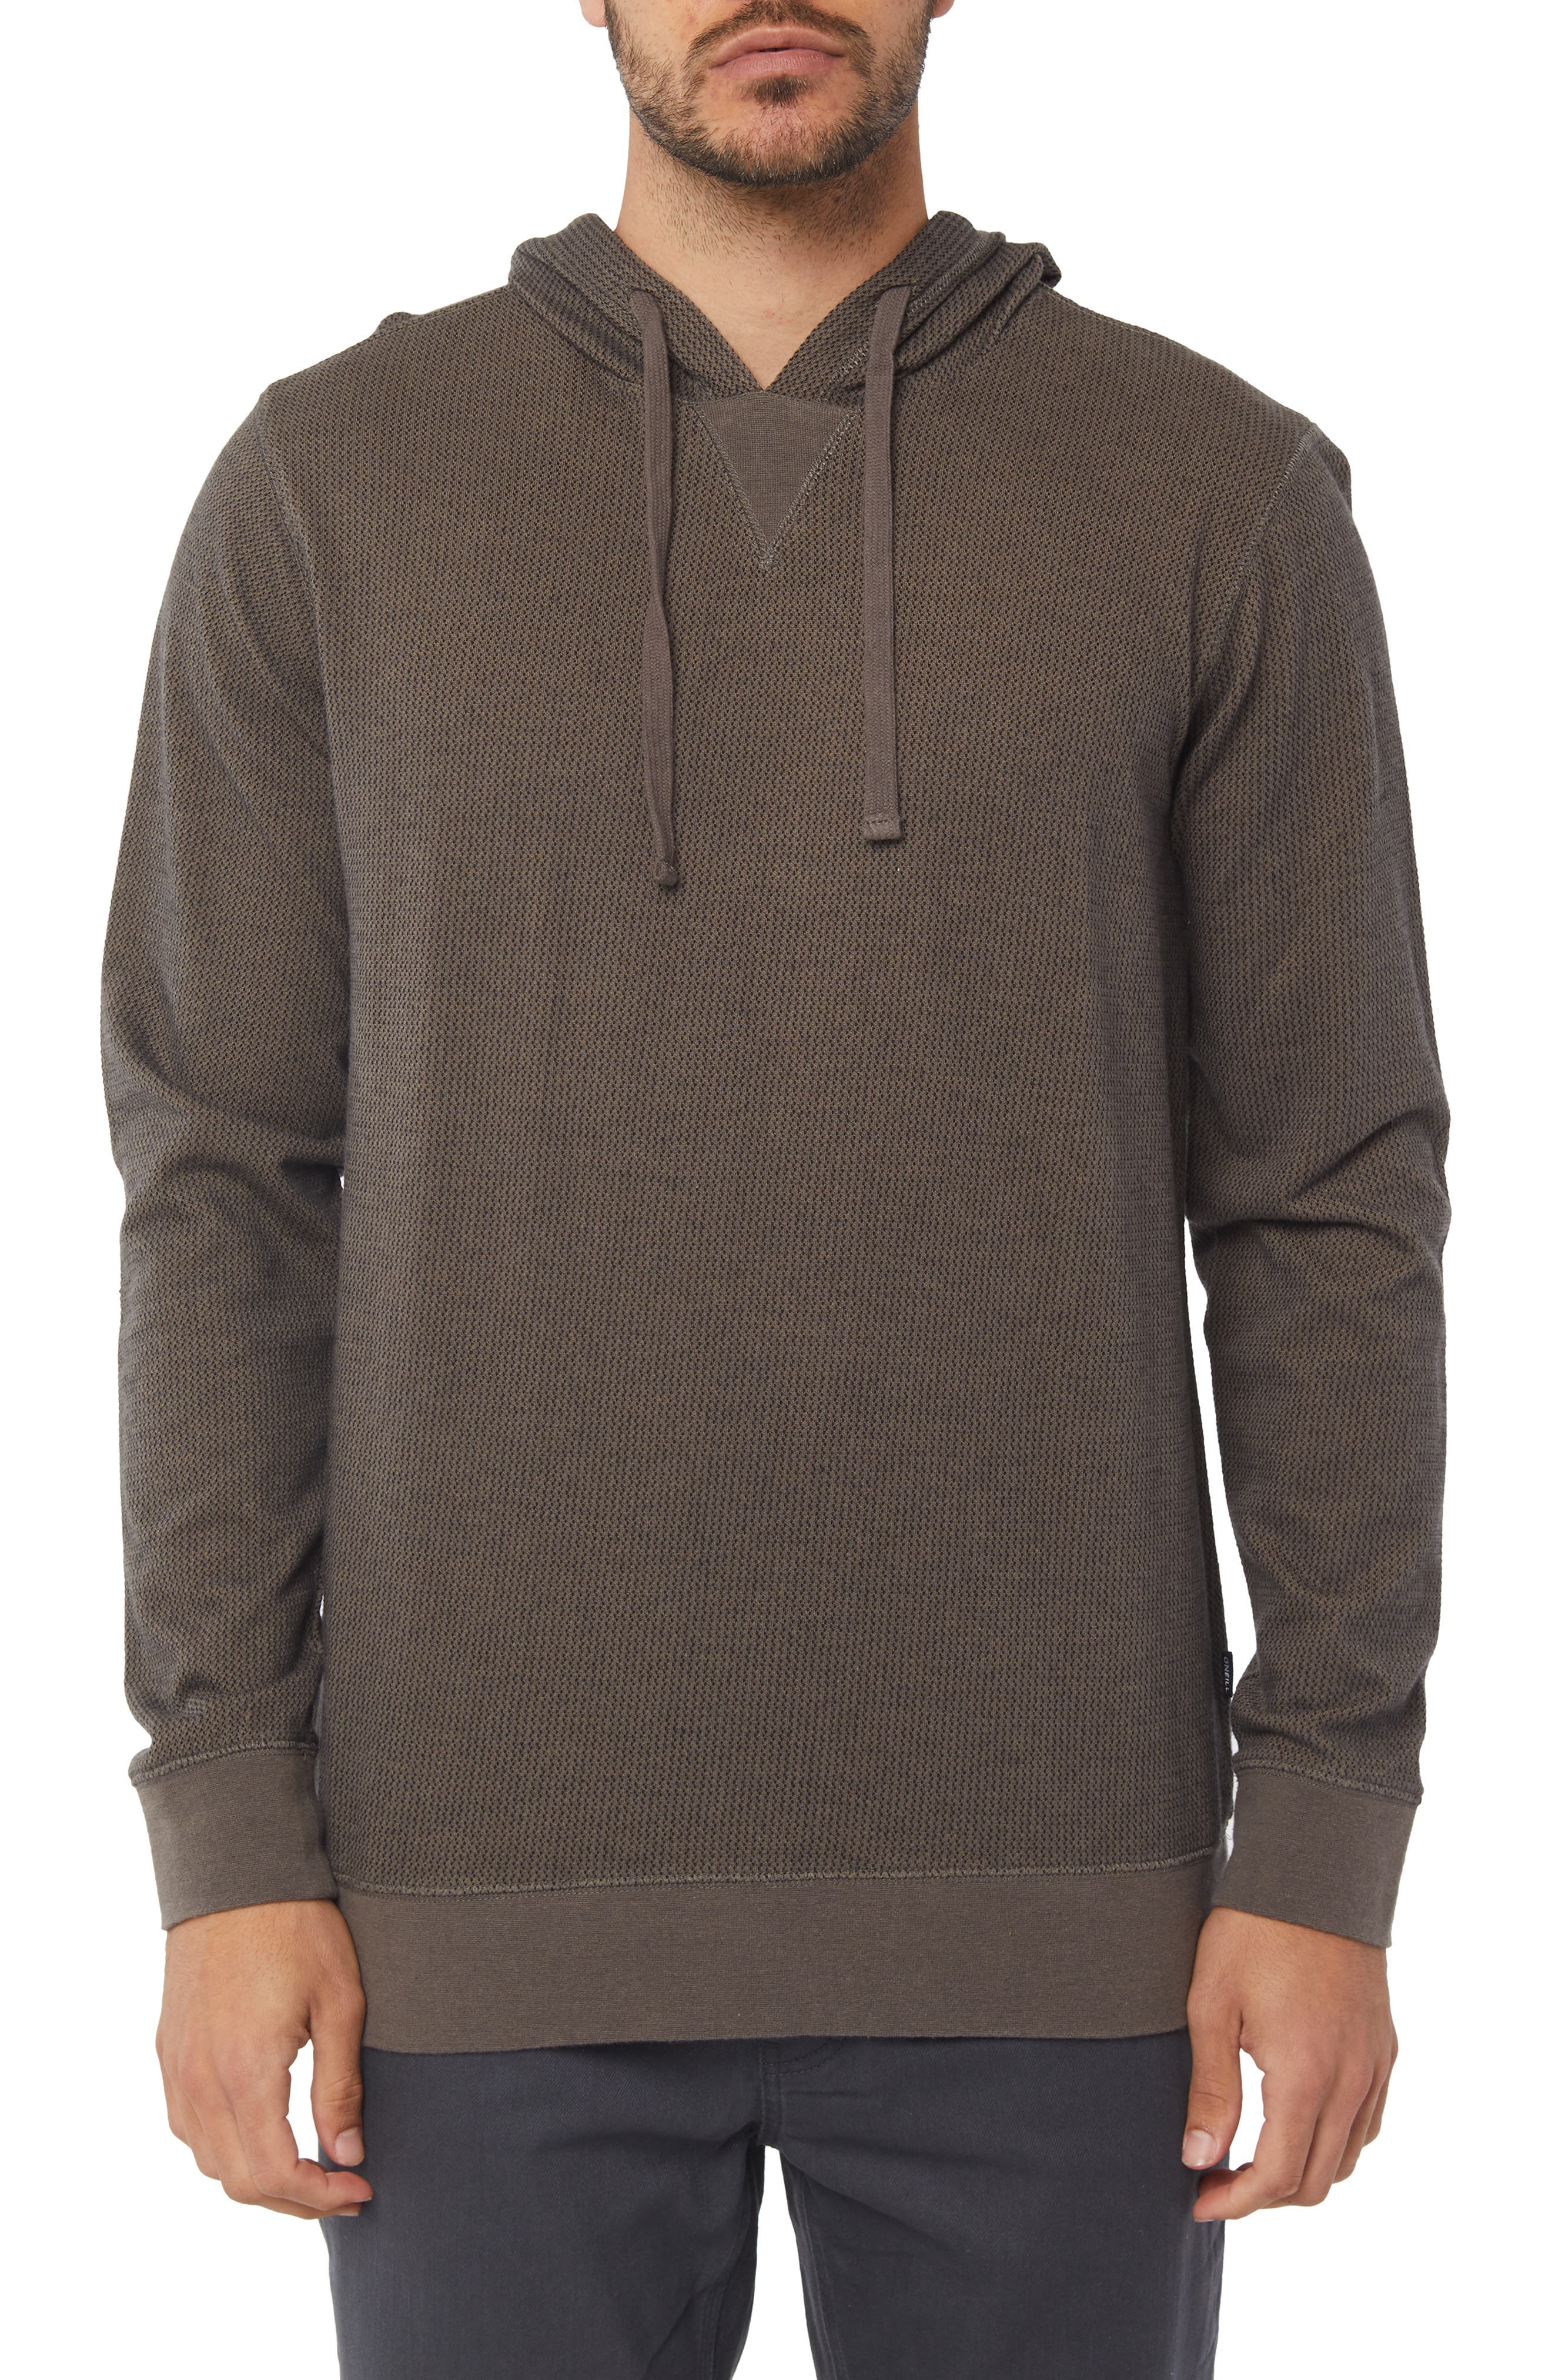 Hardy Thermal Pullover Hoodie,                             Main thumbnail 1, color,                             DARK ARMY